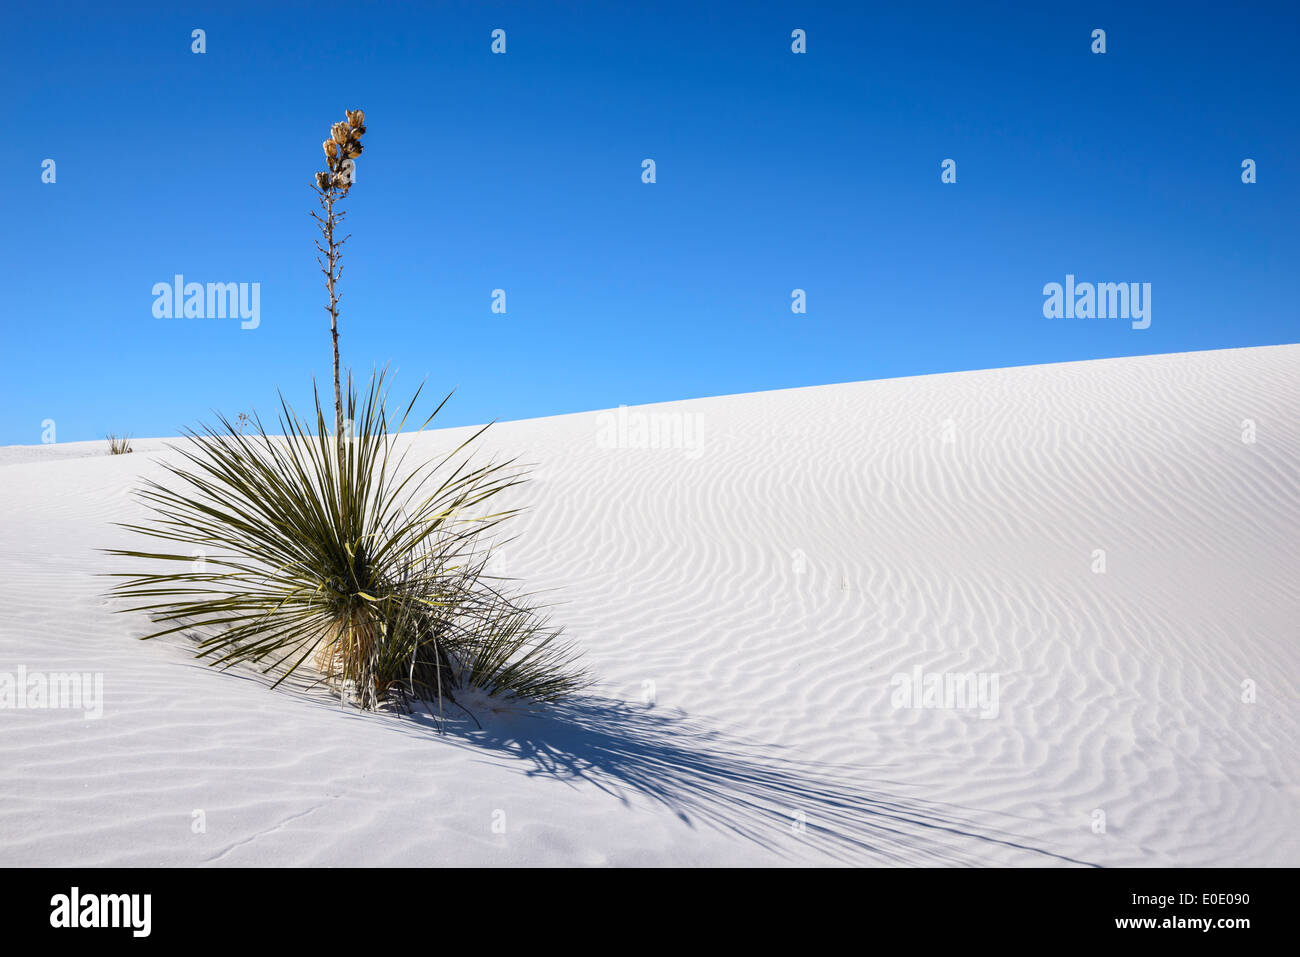 Yucca on sand dune, White Sands National Monument, New Mexico. - Stock Image